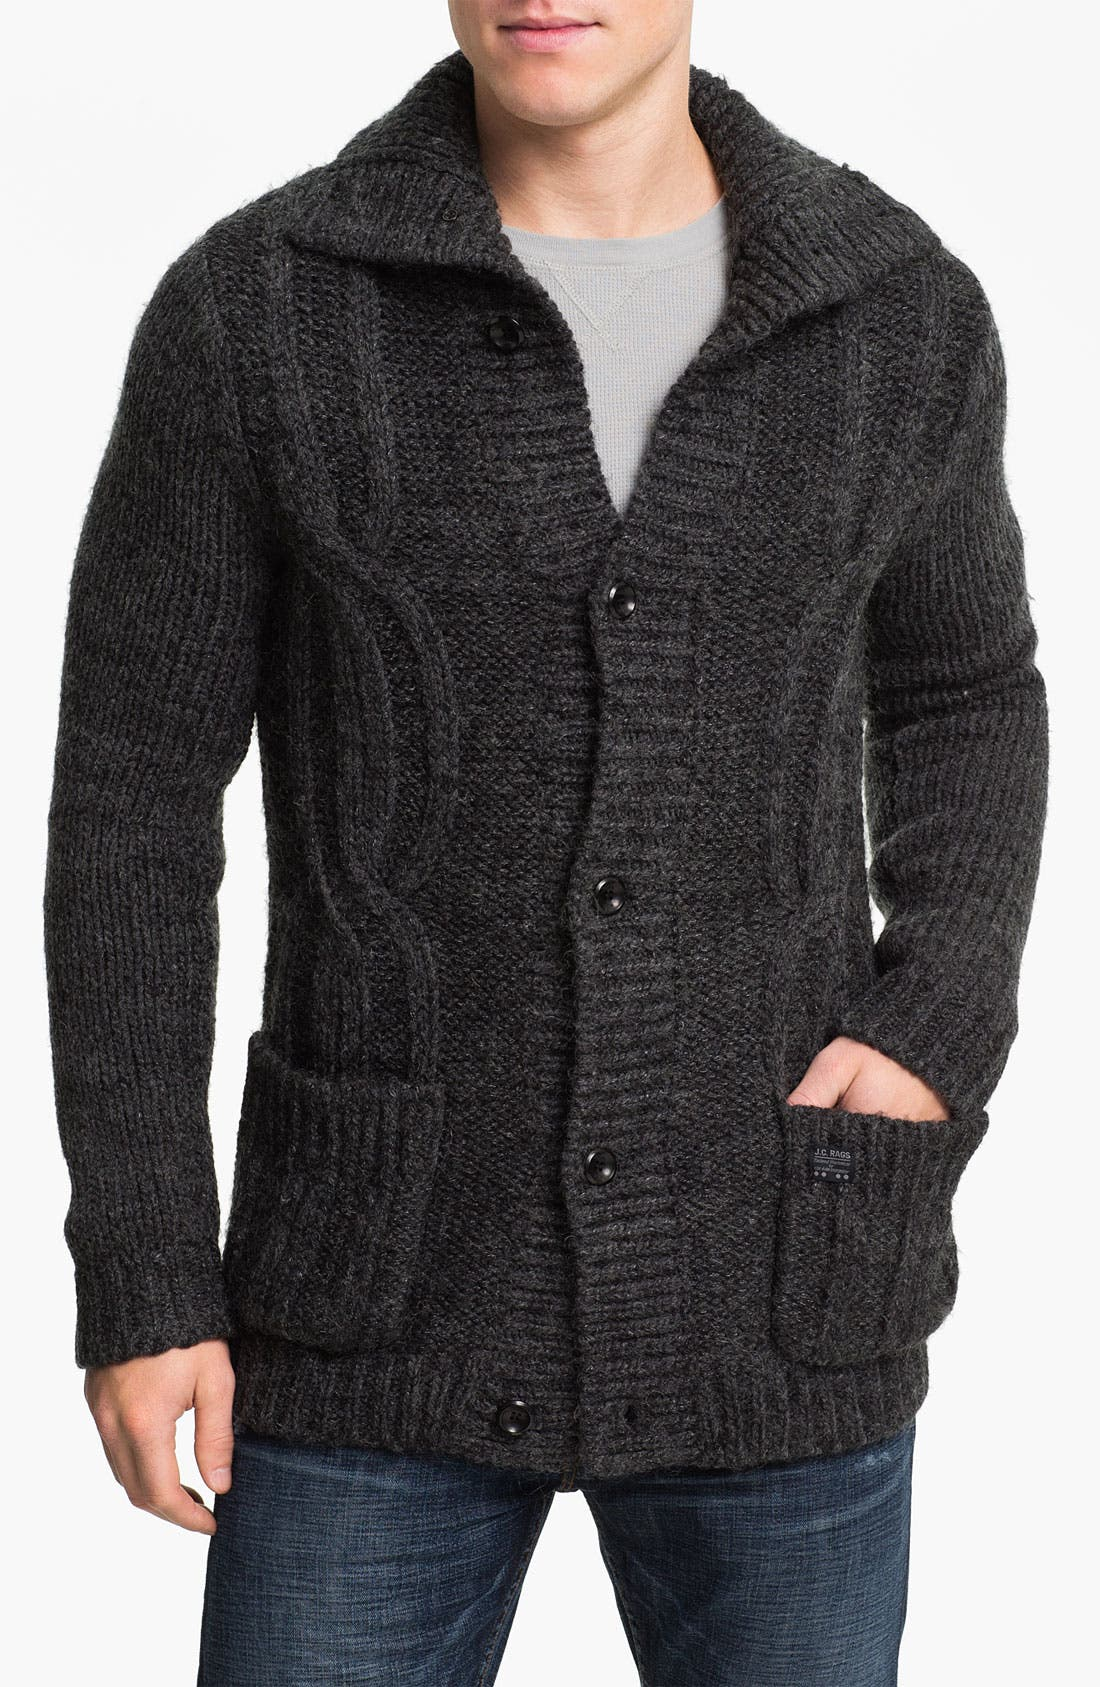 Alternate Image 1 Selected - J.C. Rags Cable Knit Cardigan